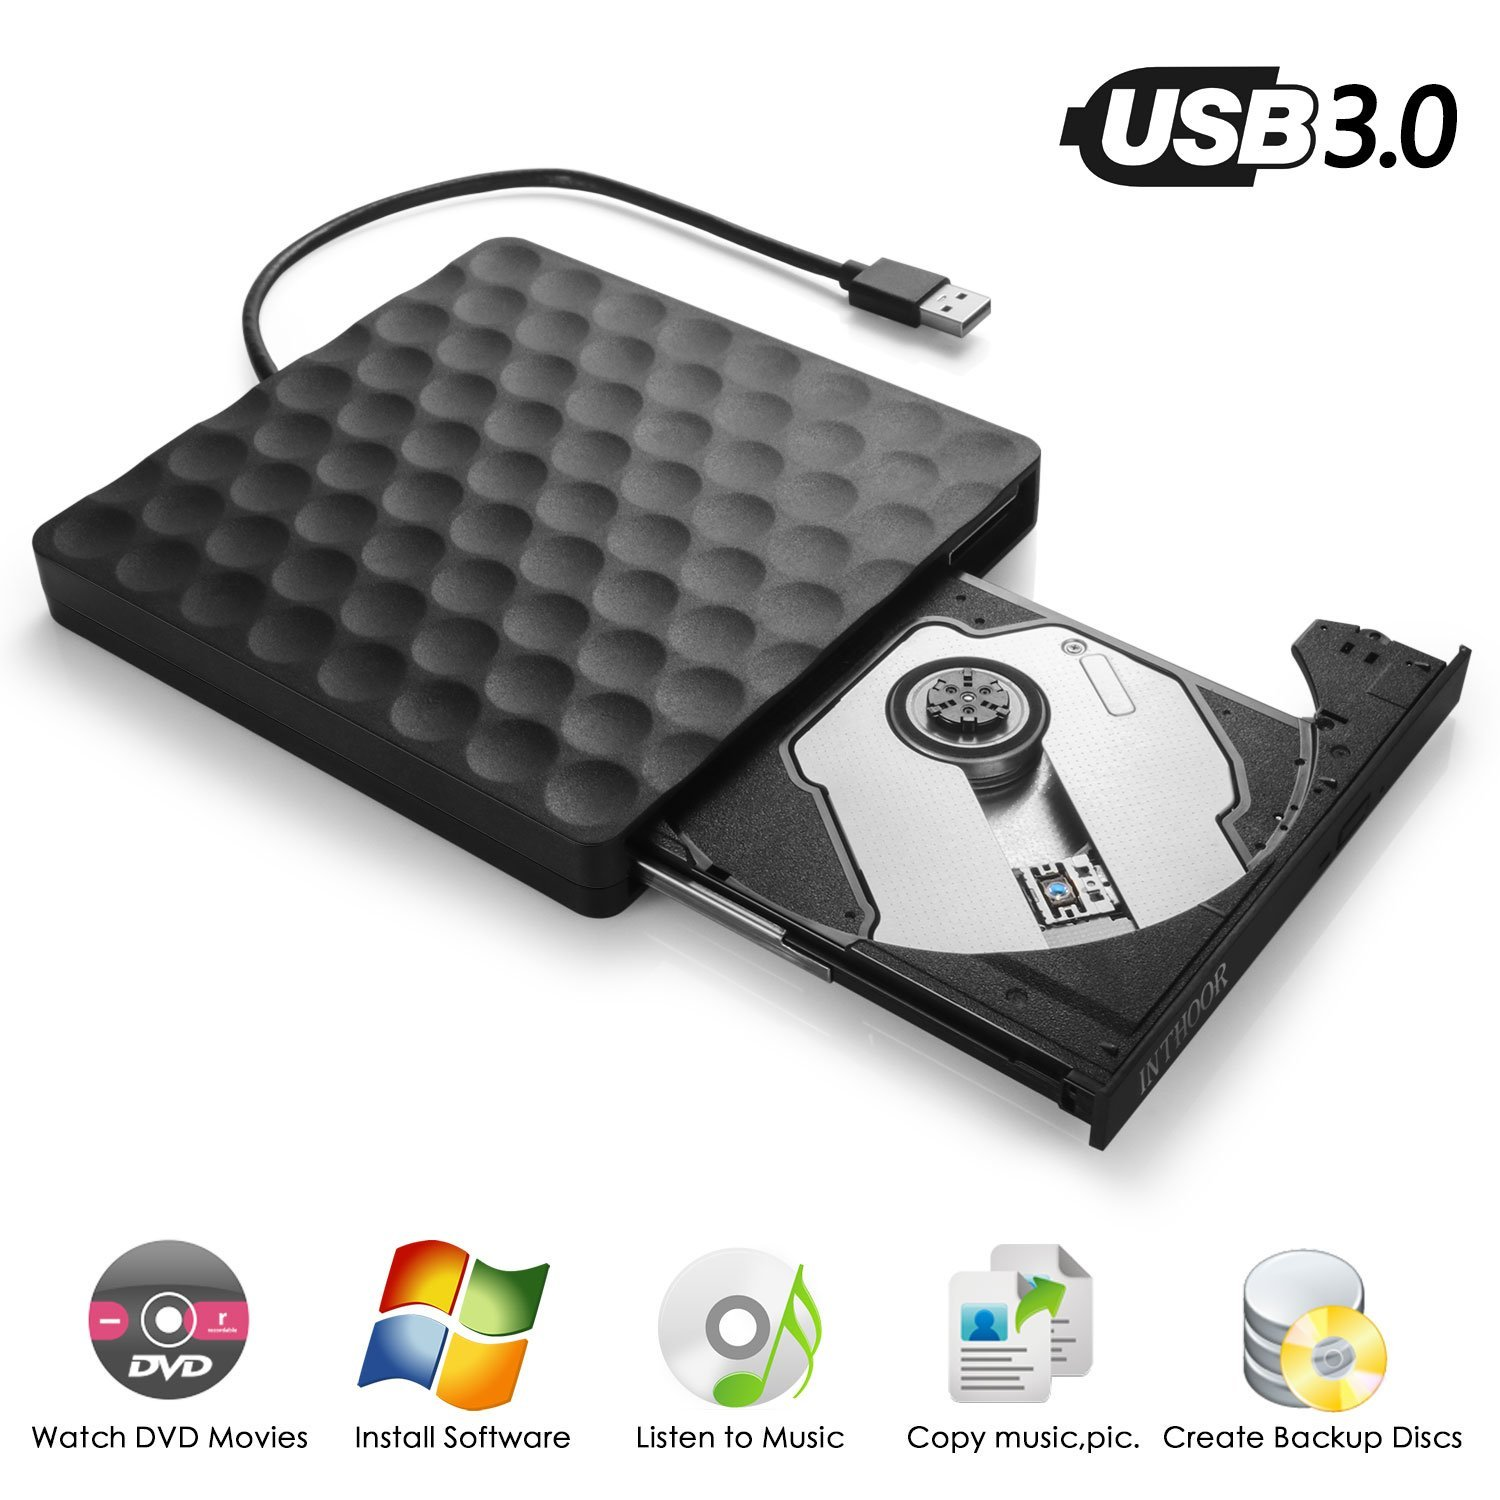 External DVD CD Drive, InThoor USB 3.0 Portable DVD CD Burner/Writer/Rewriter with High Speed Data Transfer for Laptop Desktop Support Windows XP/7/8/10/Vista/Mac OS (dvddrive)